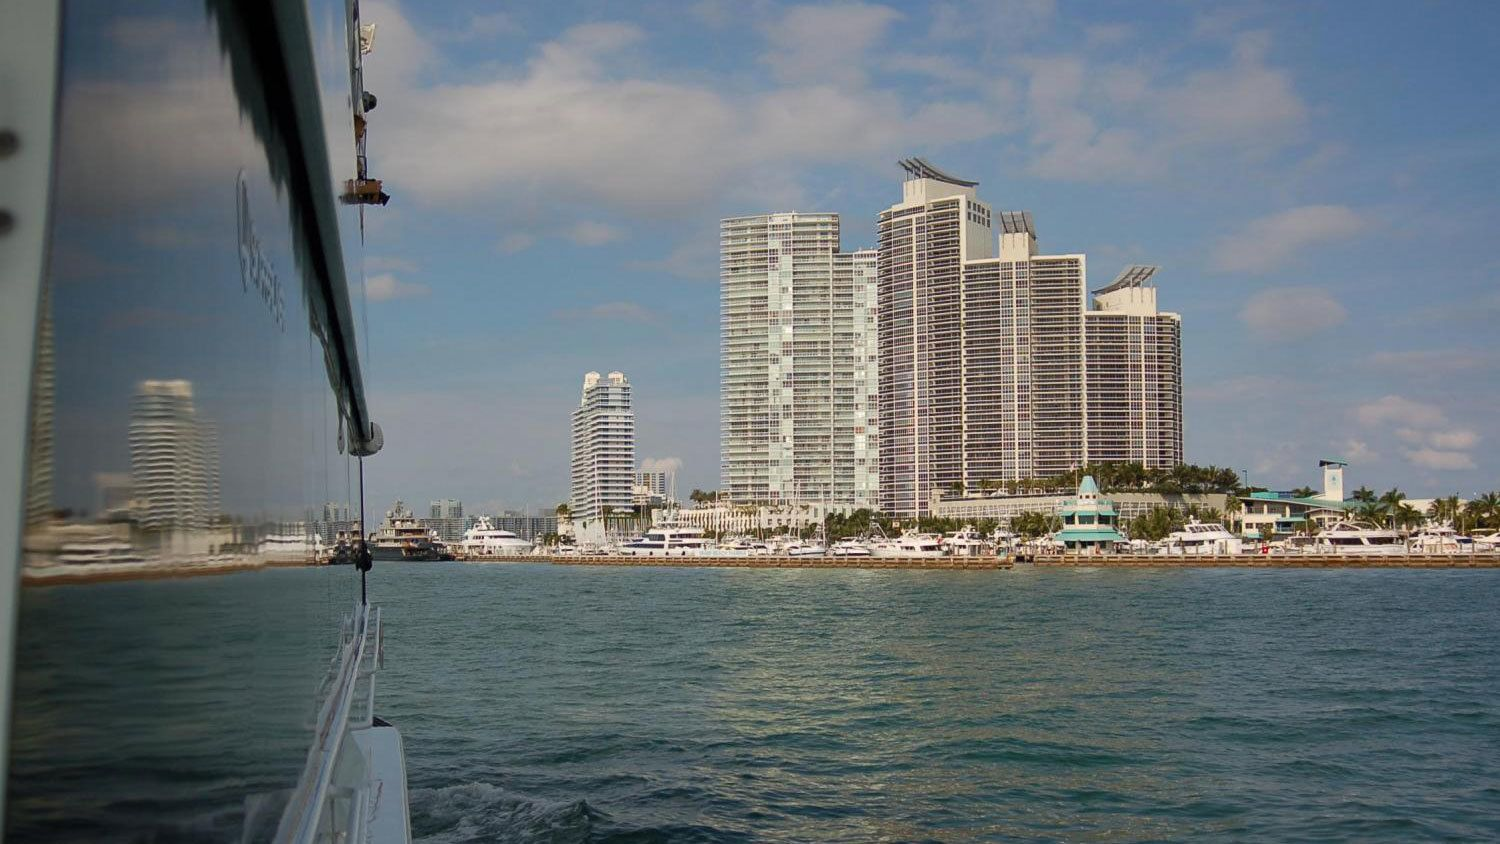 View of the Miami skyline from a boat